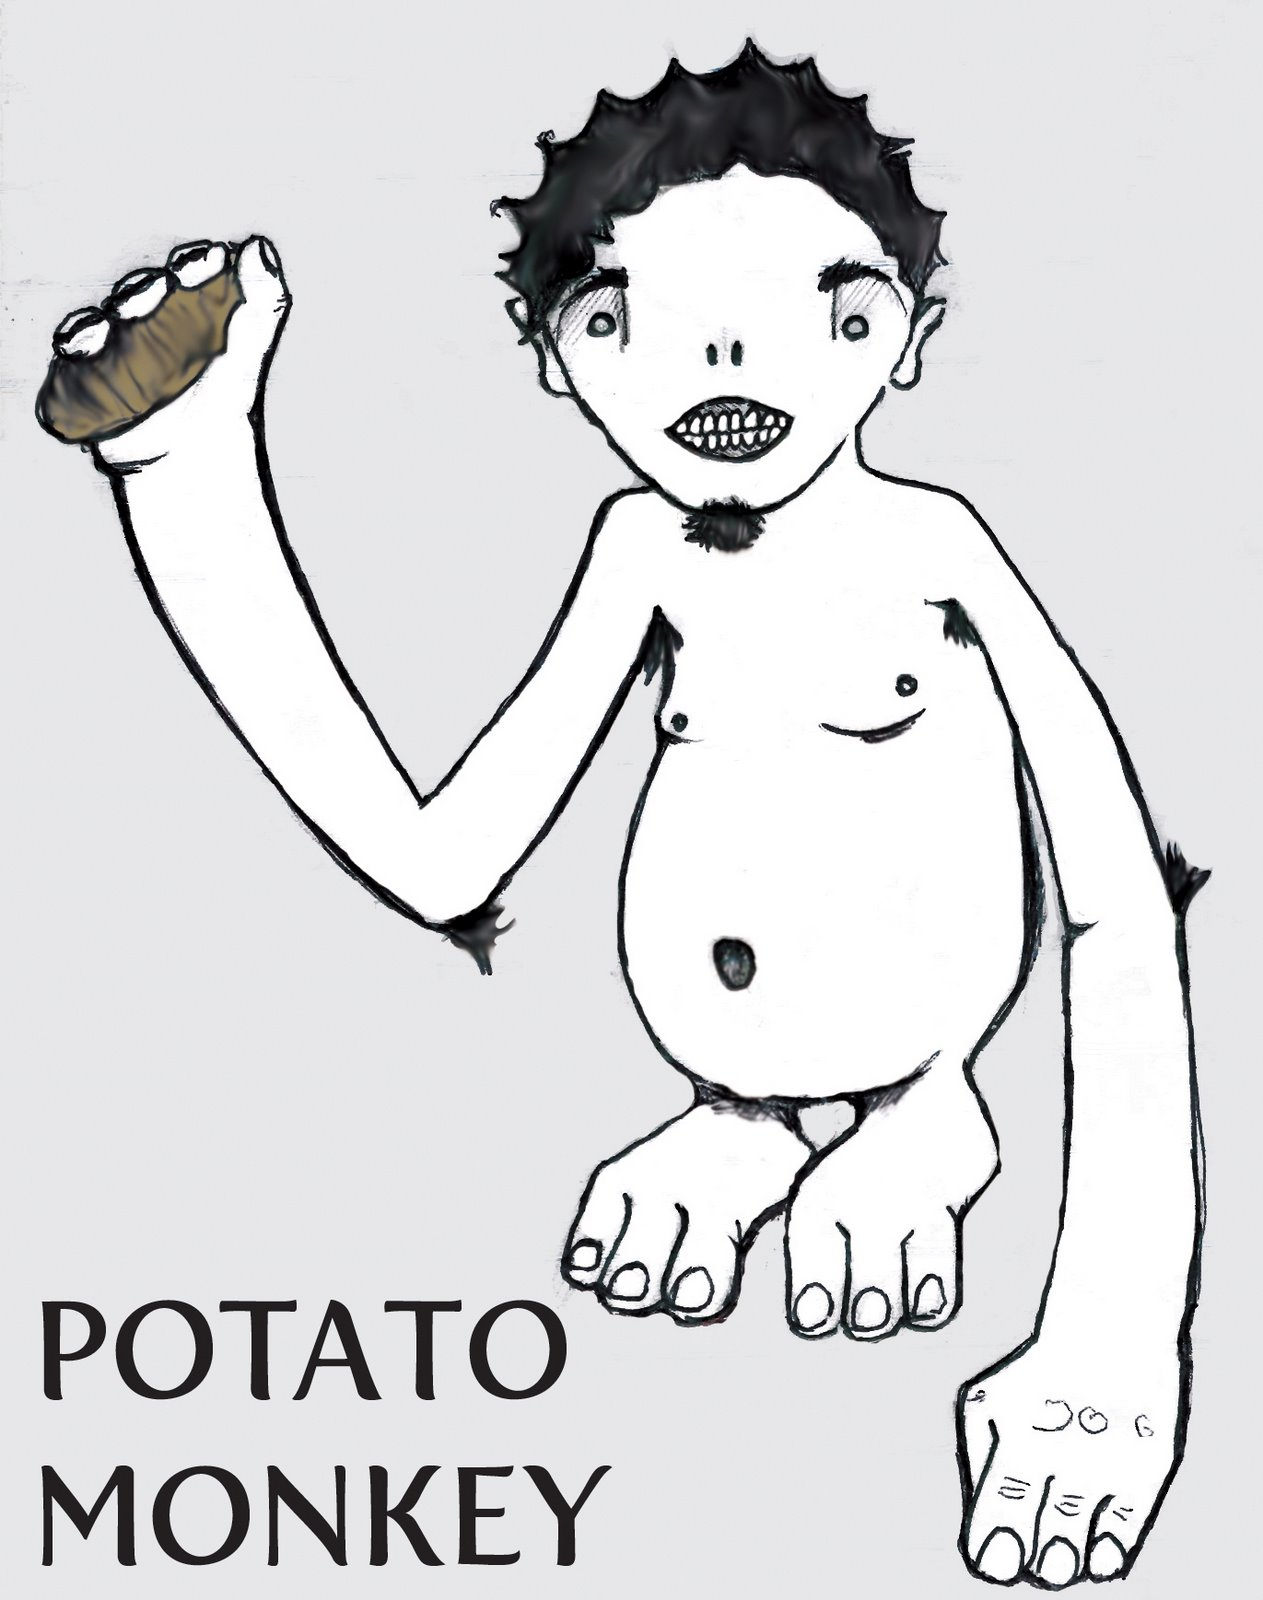 Potato Monkey